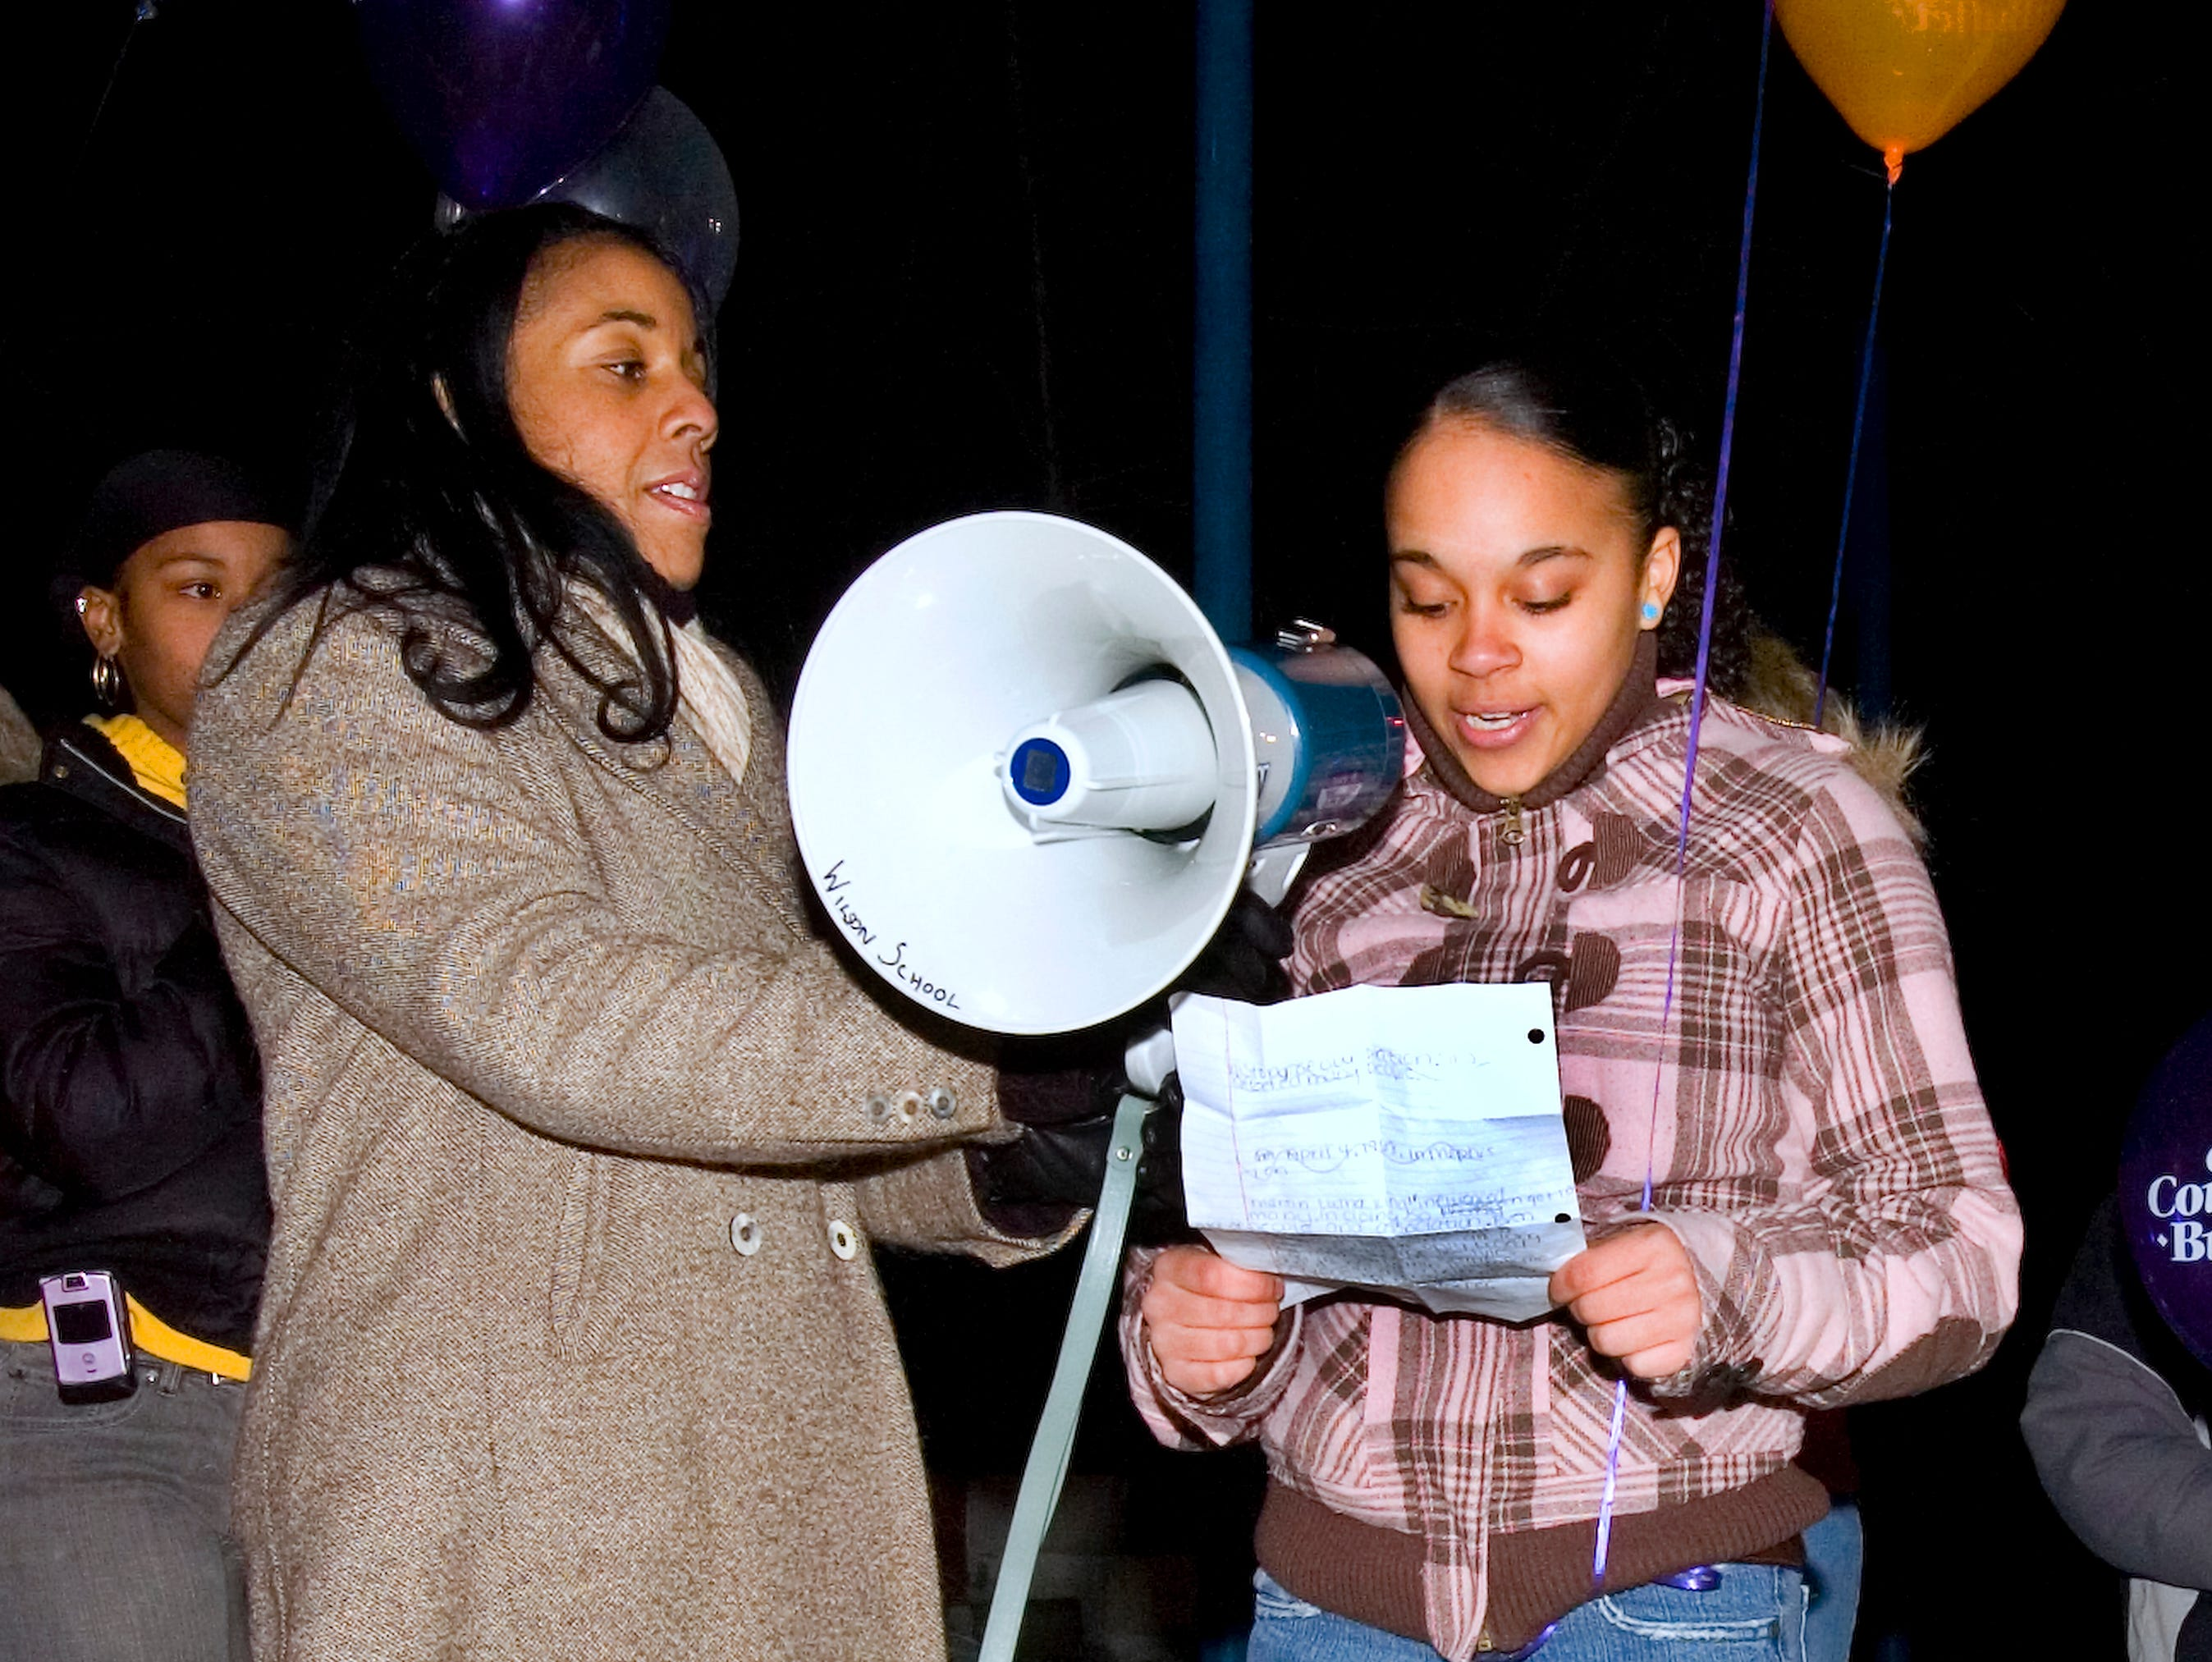 2008: Ana Shaello-Johnson, left, director of Binghamton City Youth Bureau, stands with Ciara Mondulfi, 15, of Binghamton while she makes a speech to remember Martin Luther King at the MLK Promenade on Wall Street in Binghamton on Monday evening.